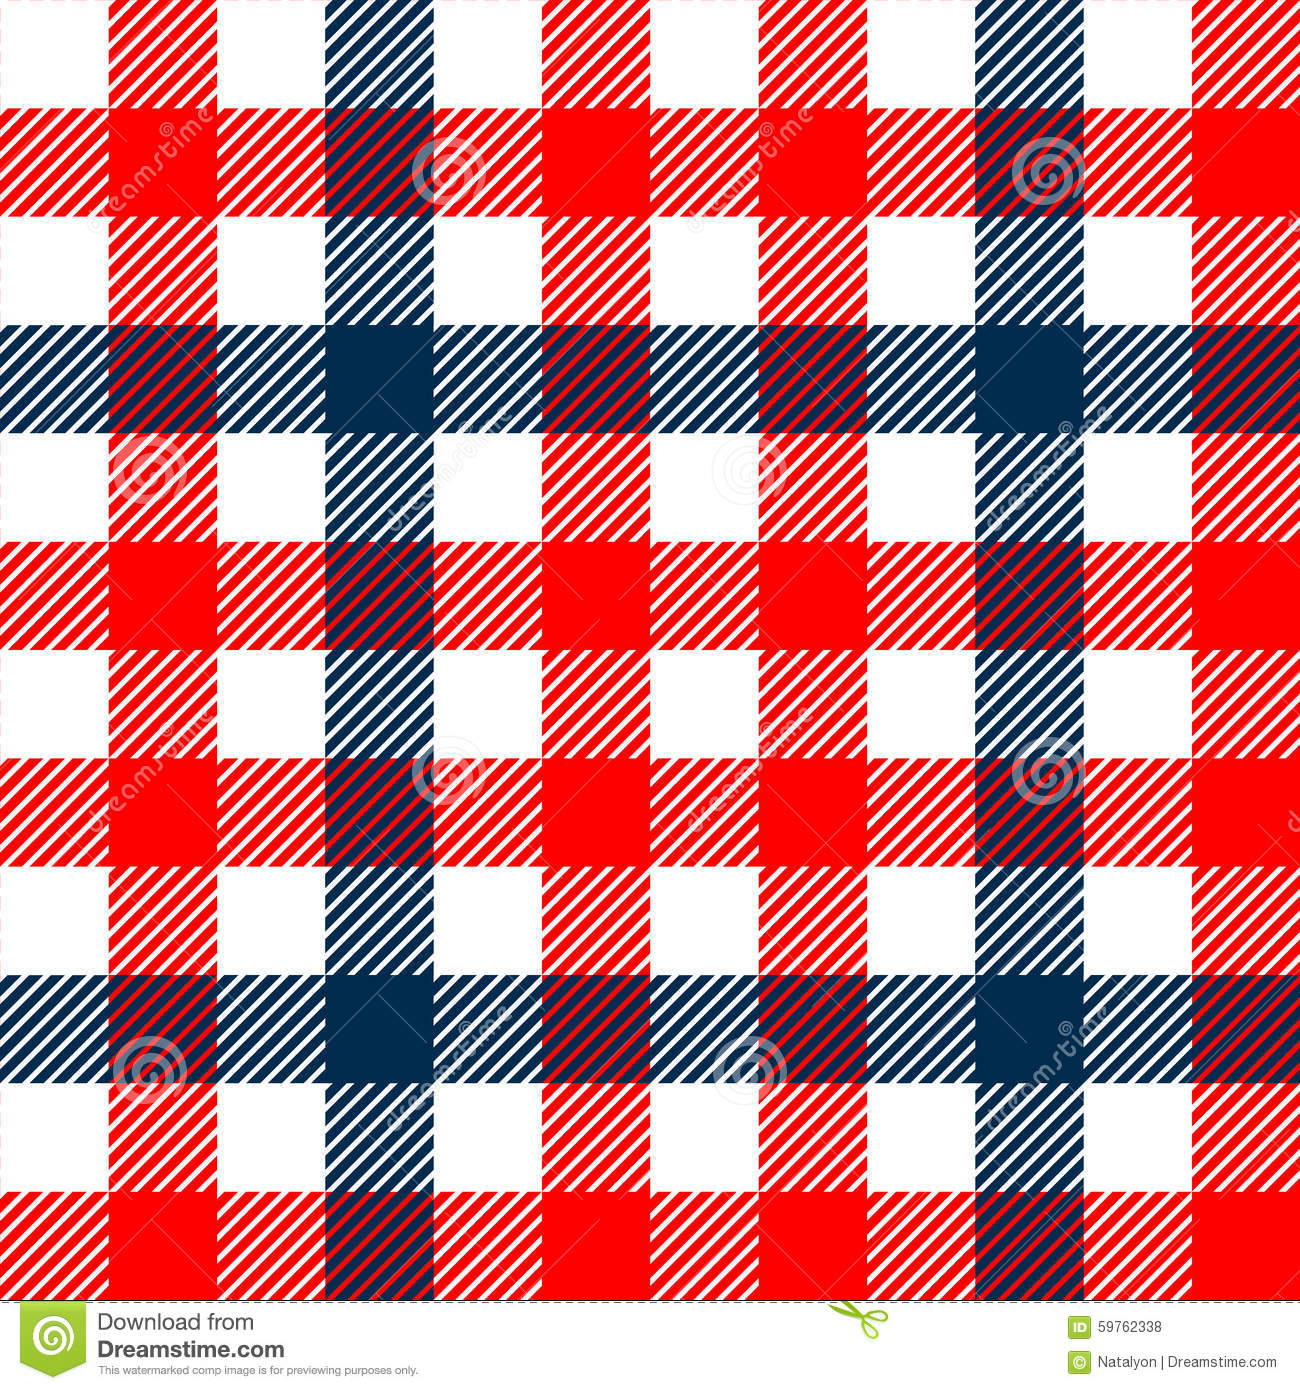 Checkered Gingham Plaid Fabric Seamless Pattern In Blue